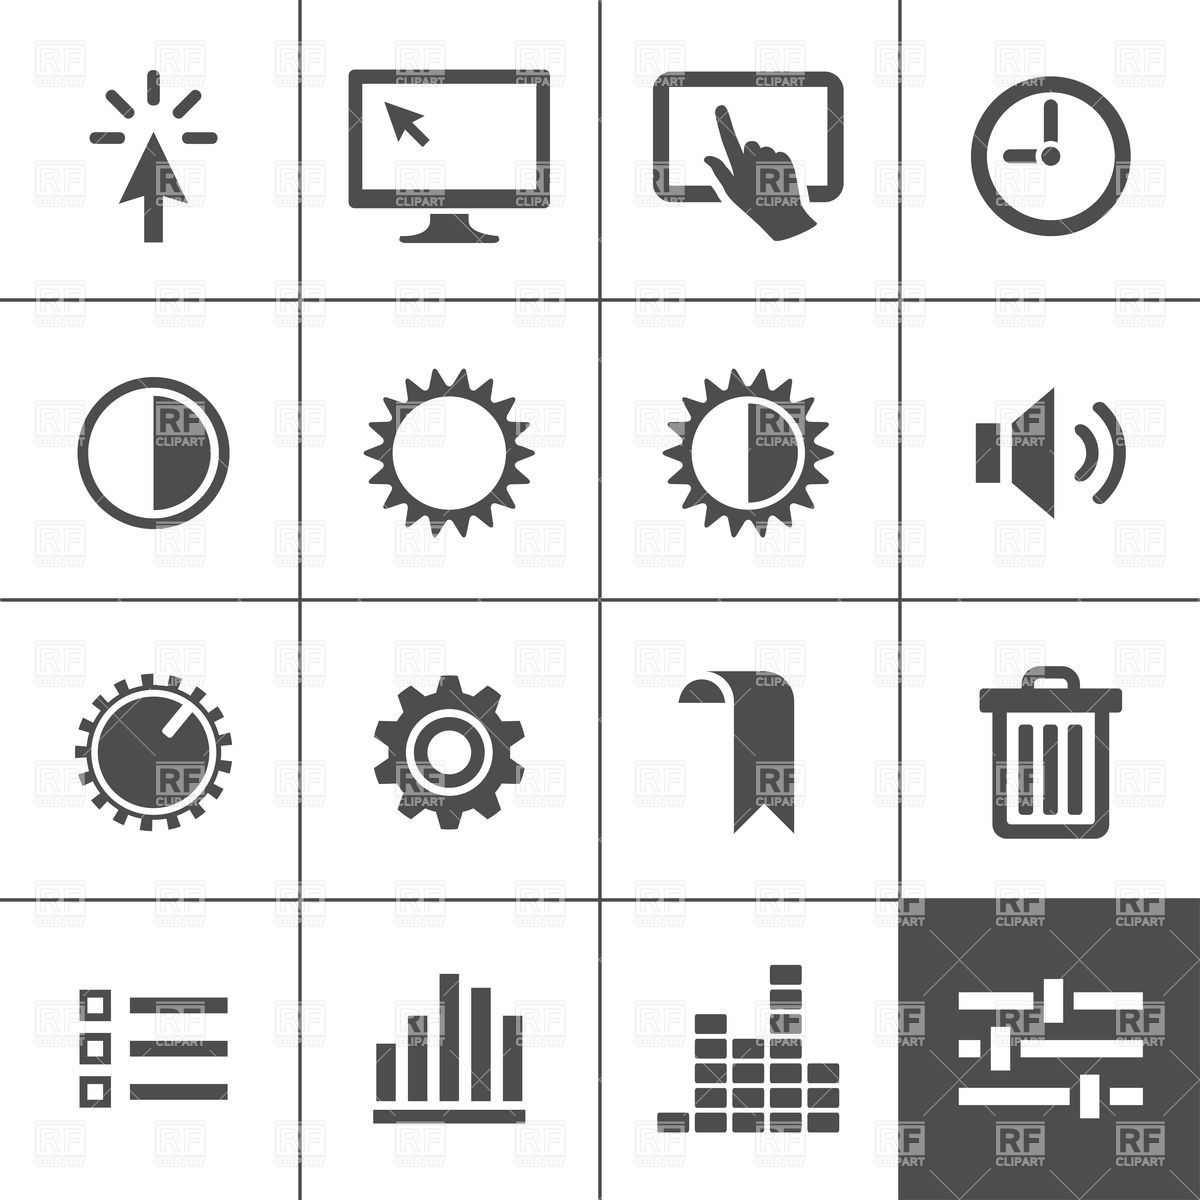 Controls and settings icon set Vector Image #20543.